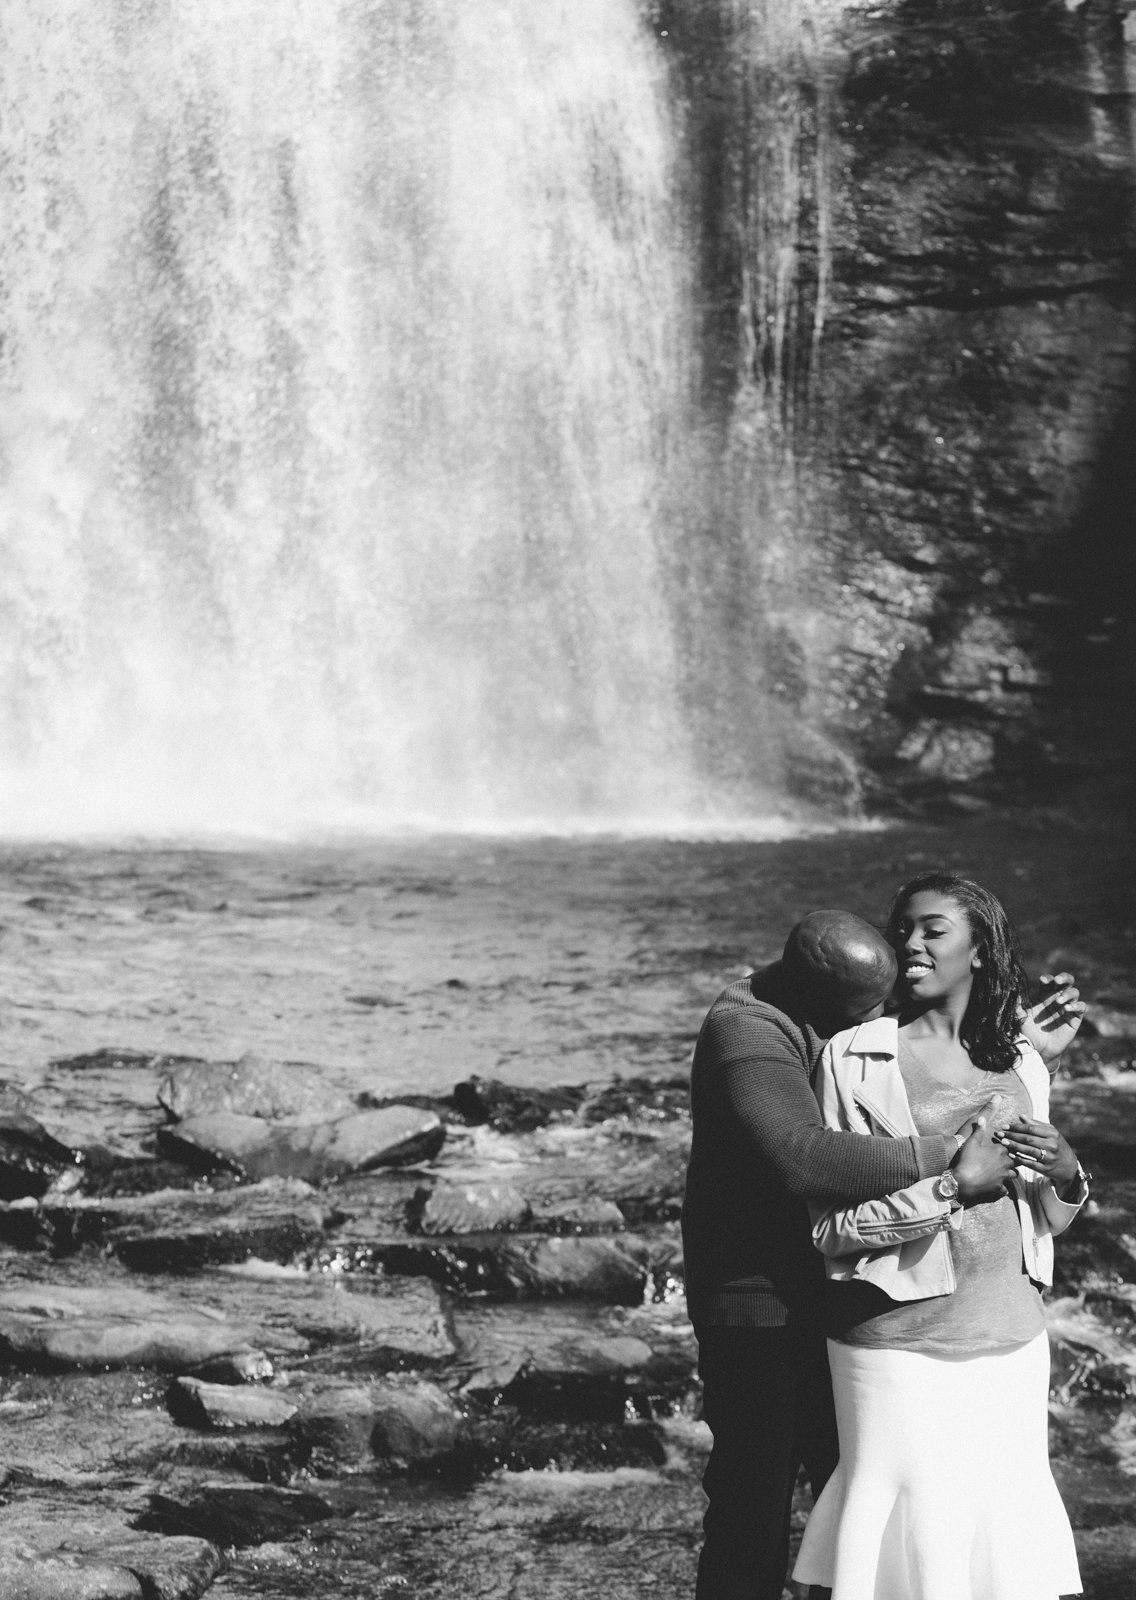 Looking_Glass_Falls_Engagement_Photography_BriMcDanielPhotography-22